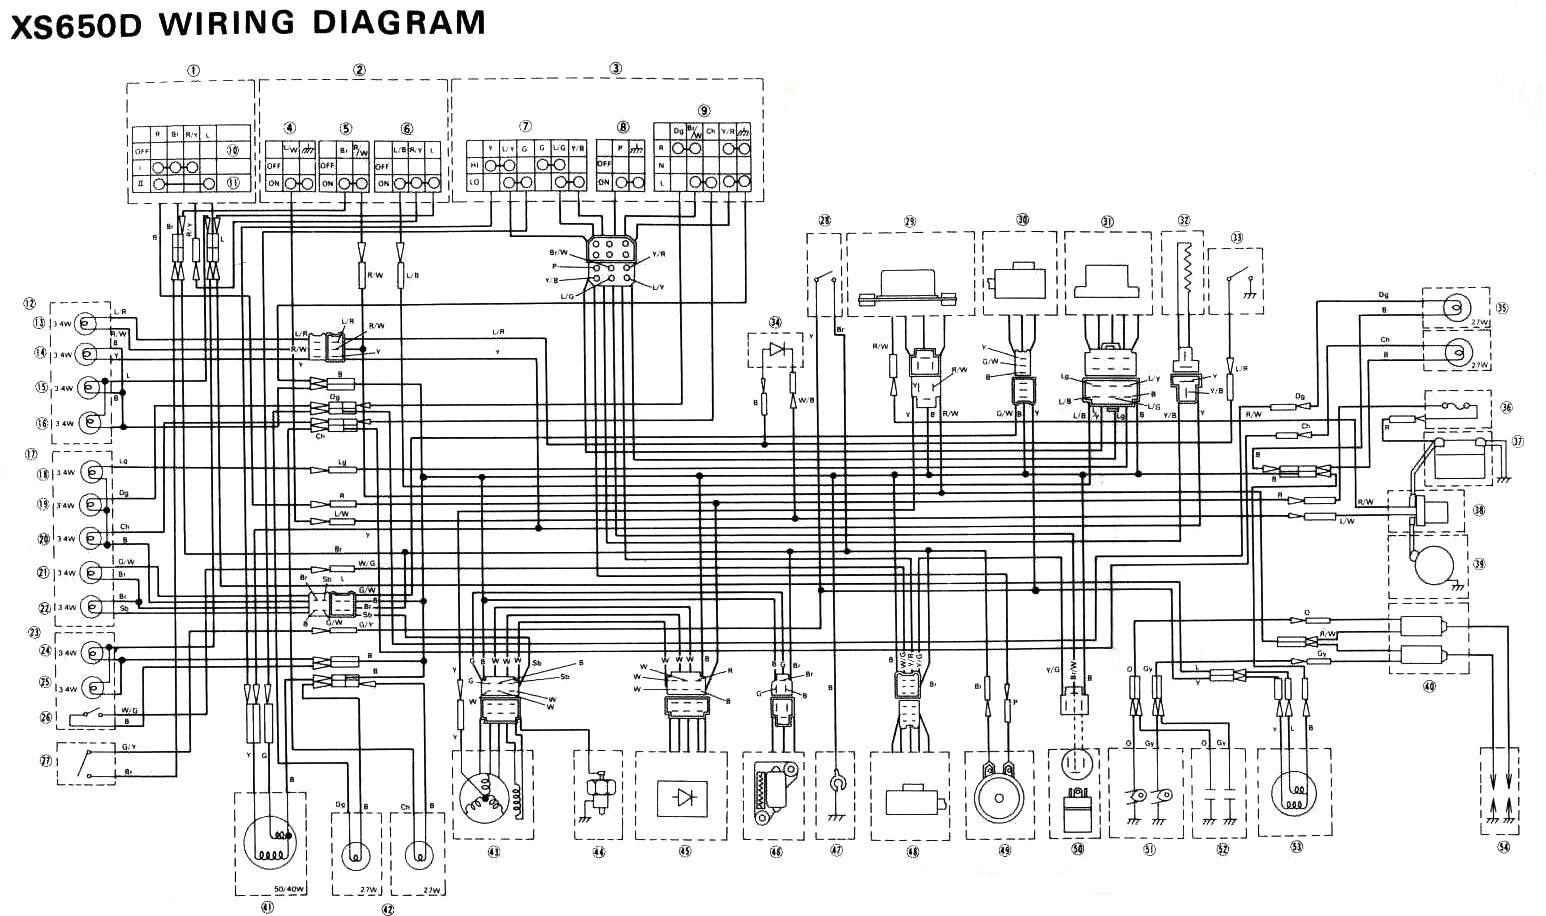 xs650 wiring diagram the wiring diagram xs650d wiring diagram xs650d wiring diagrams for car or truck wiring diagram